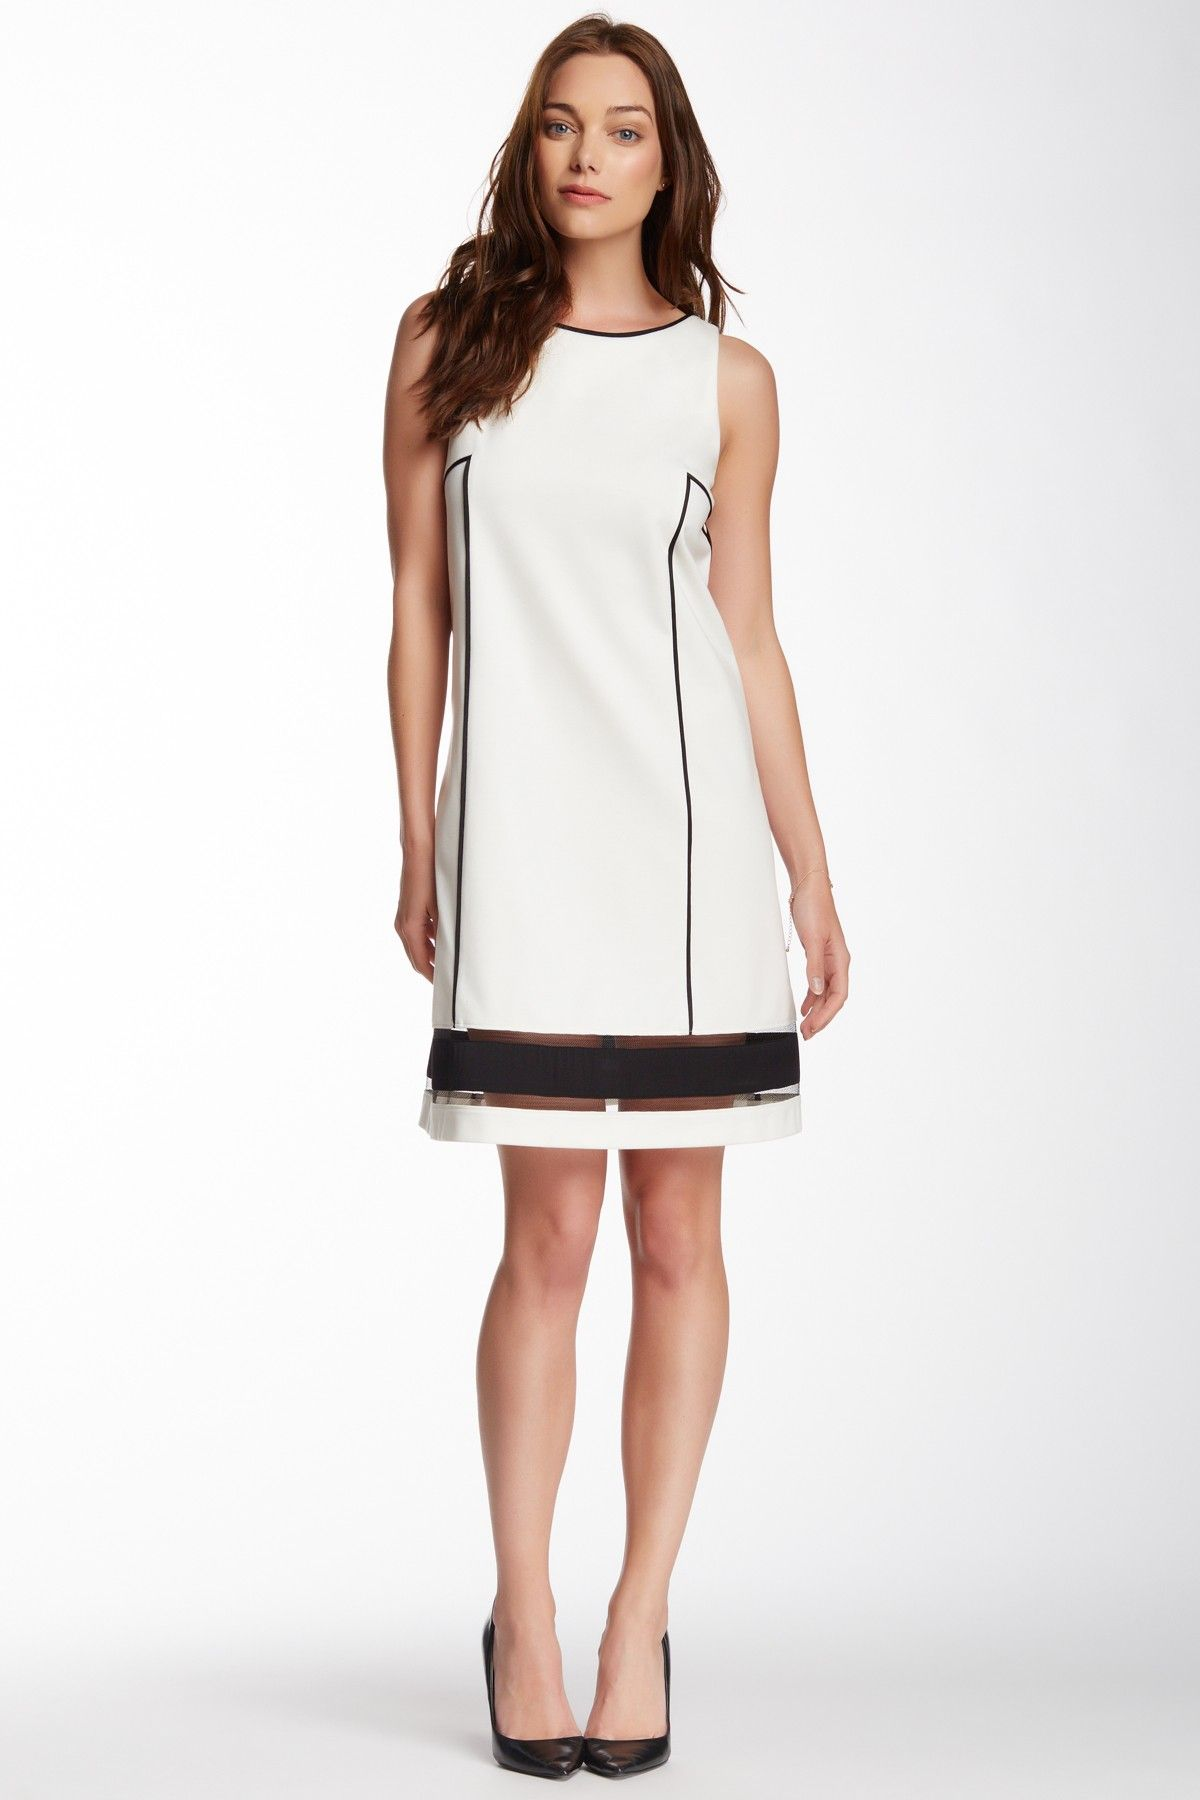 Erin erin fetherston laurel dress nordstrom fashion clothes and